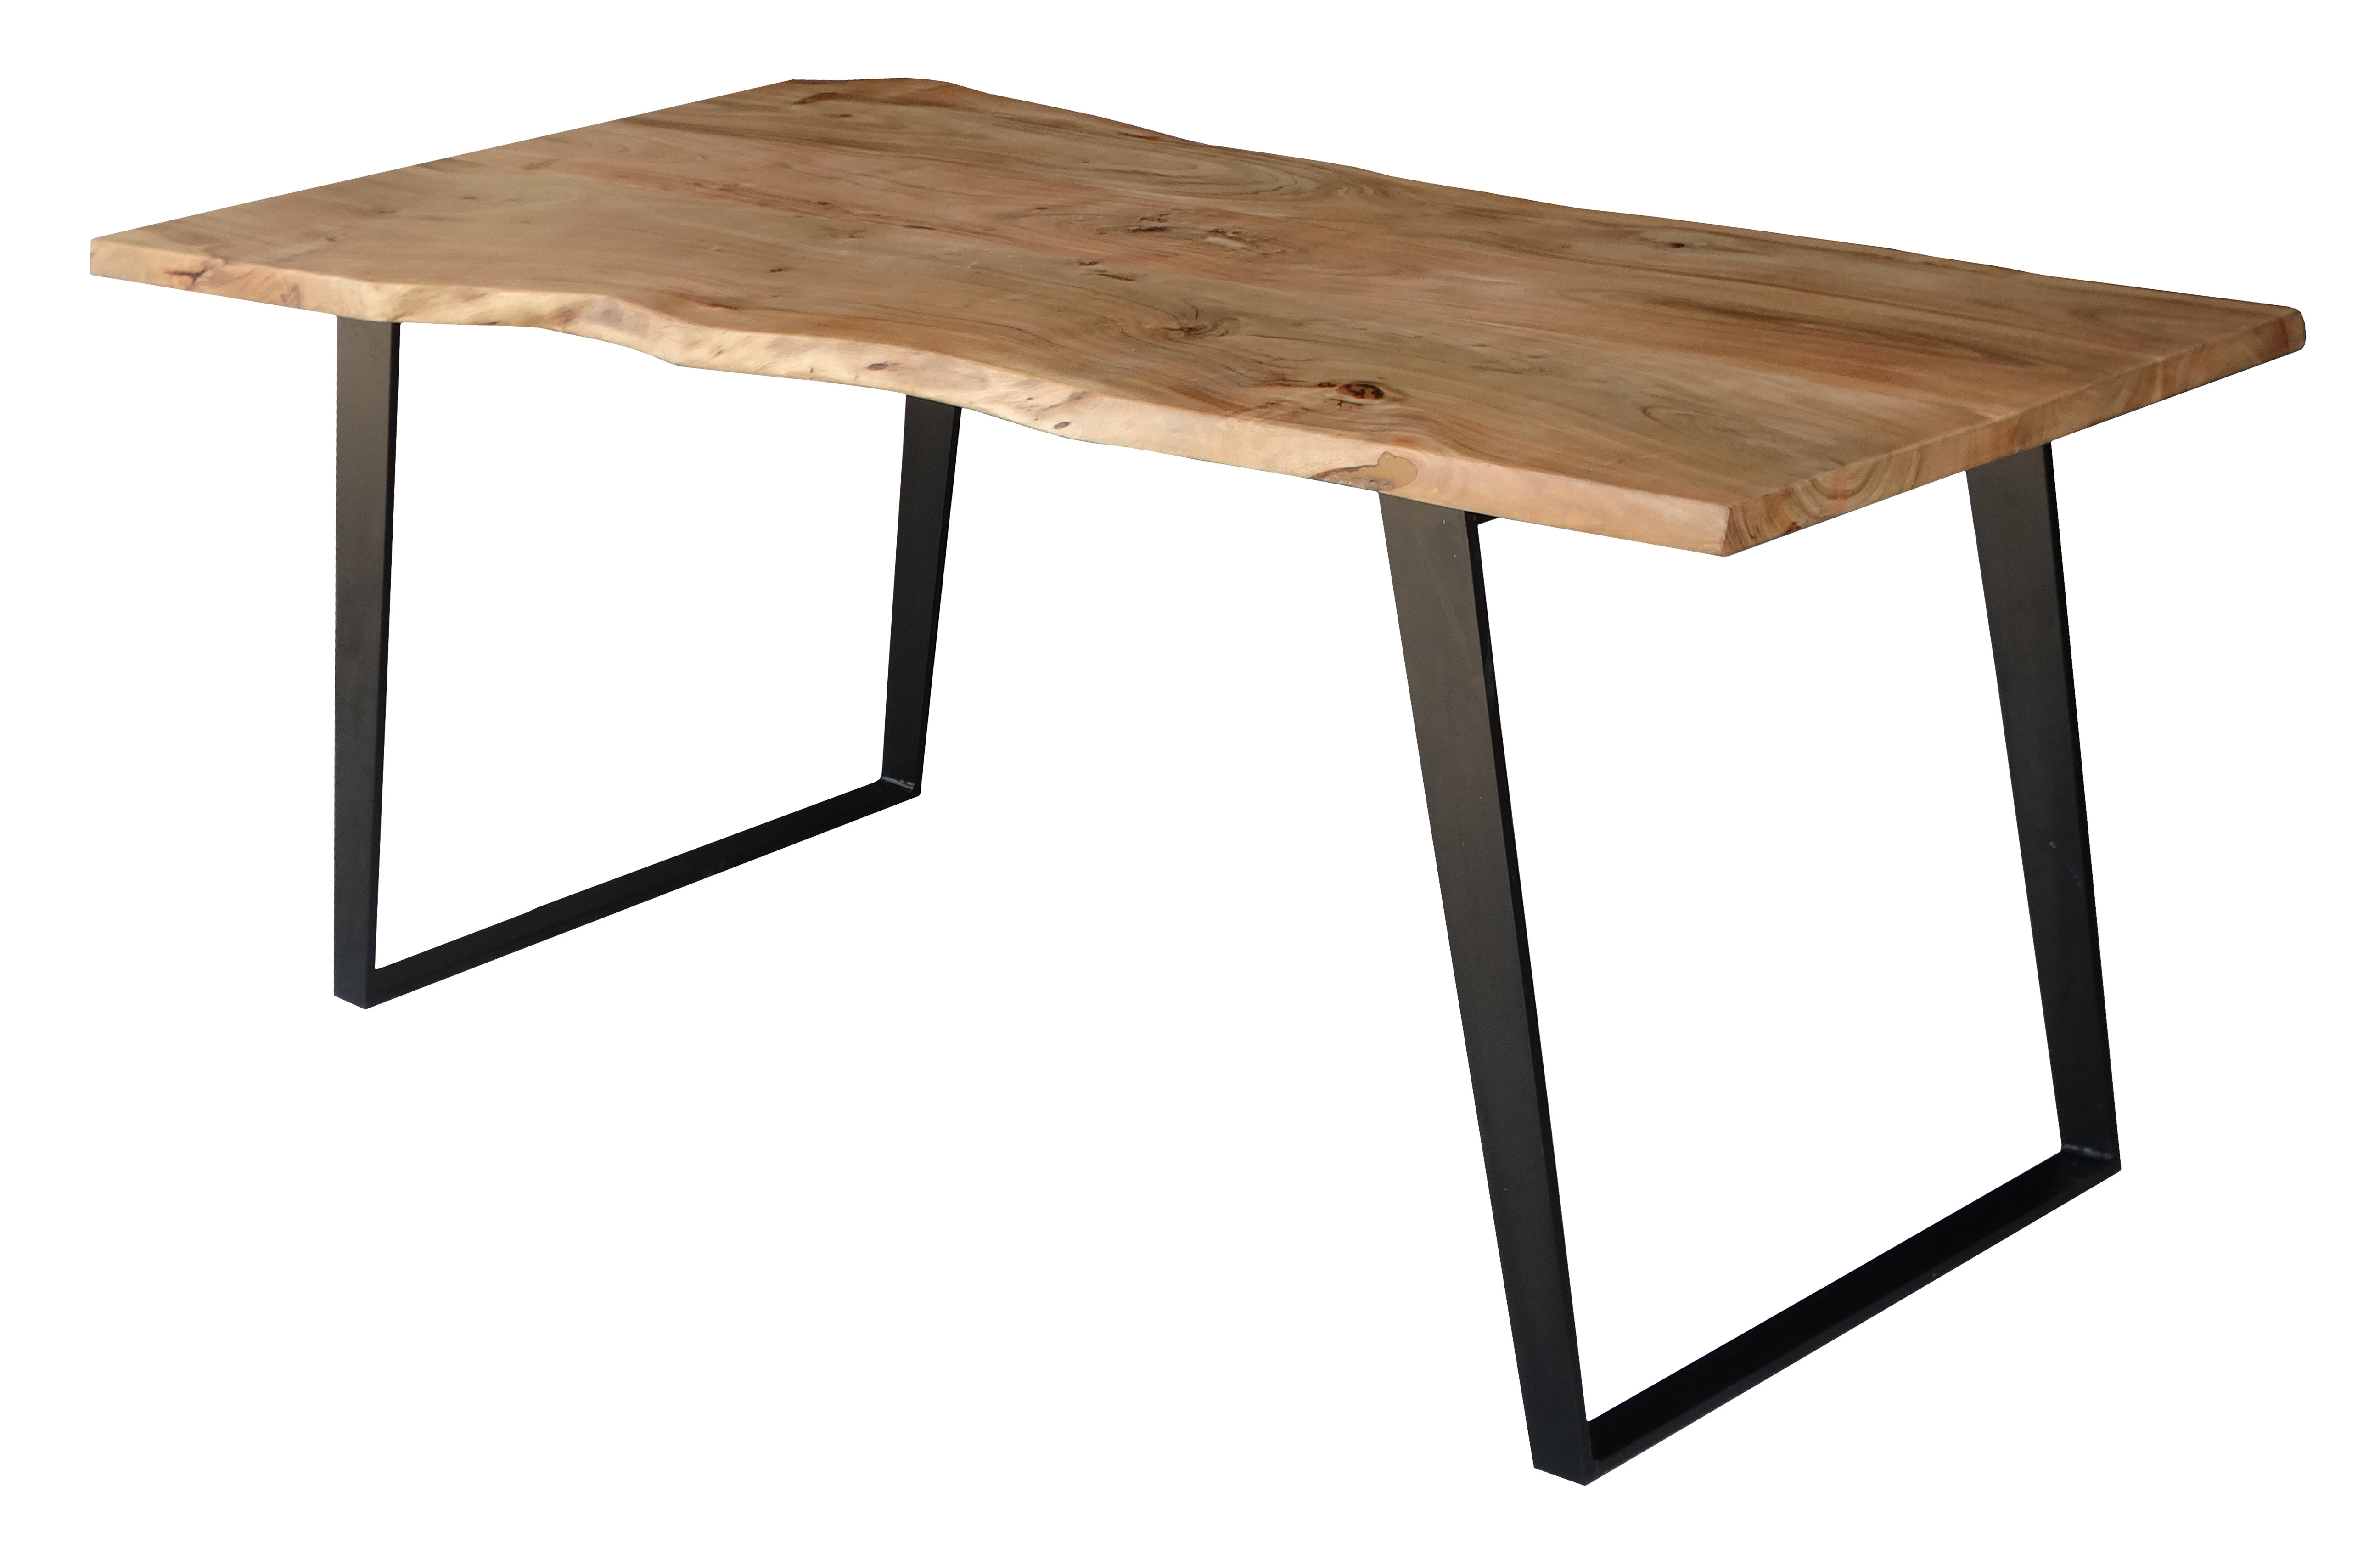 Emmeline 5 Piece Breakfast Nook Dining Sets Pertaining To Most Popular Emmeline Solid Wood Live Edge Dining Table (View 10 of 20)